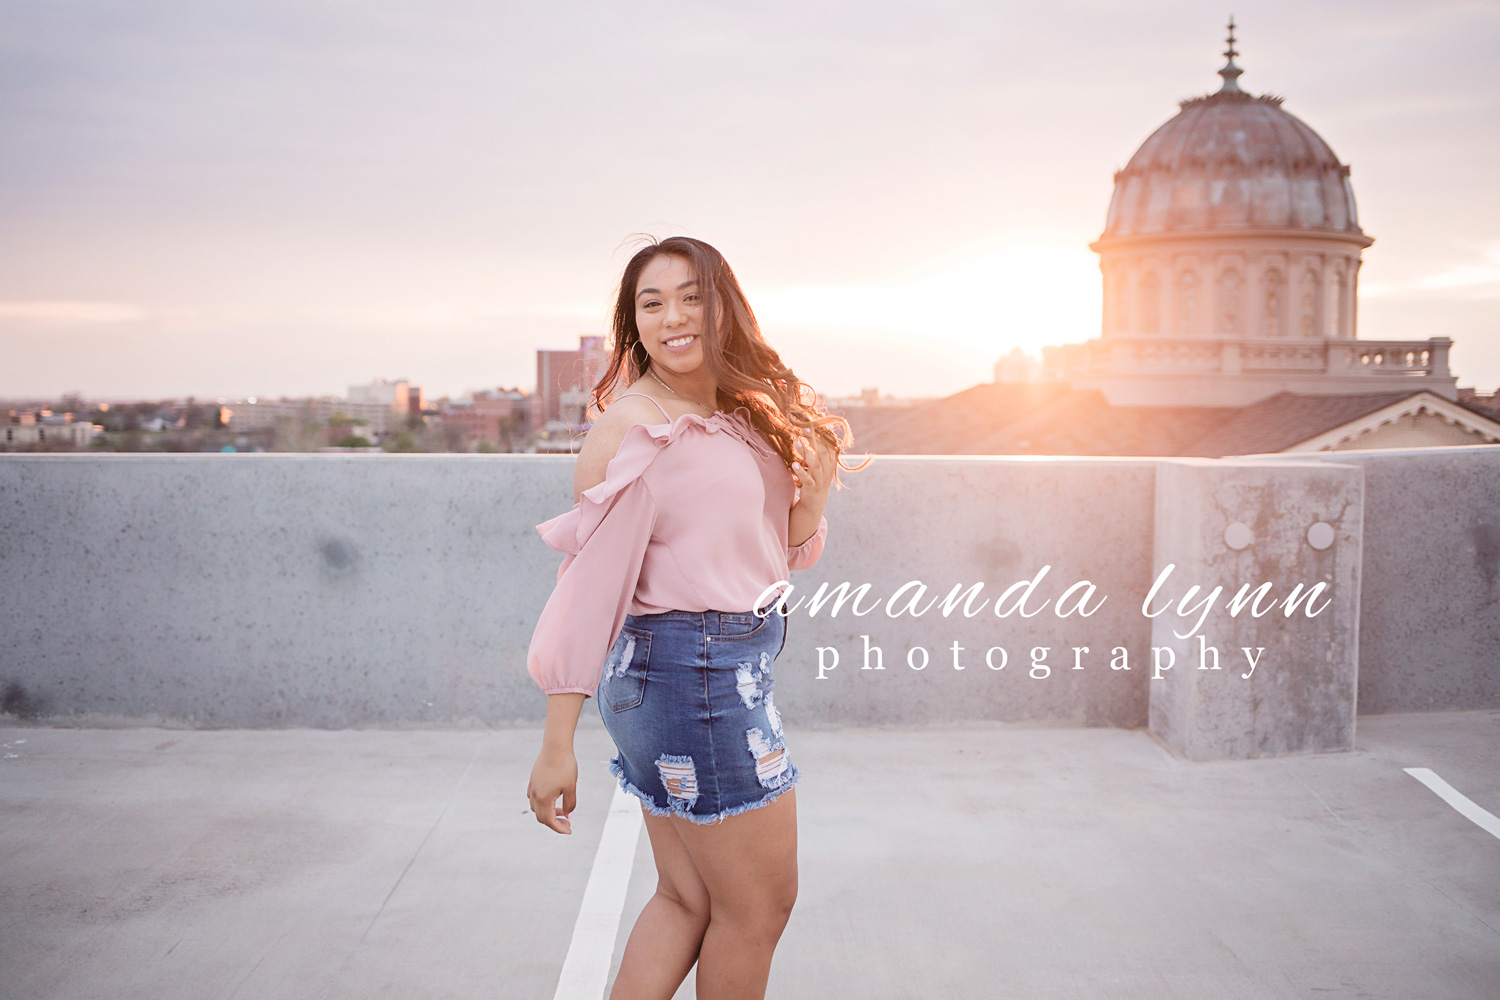 Oklahoma city senior girl wearing pink top and jean skirt, dancing on top of parking garage in Oklahoma City, Oklahoma by Amanda Lynn.